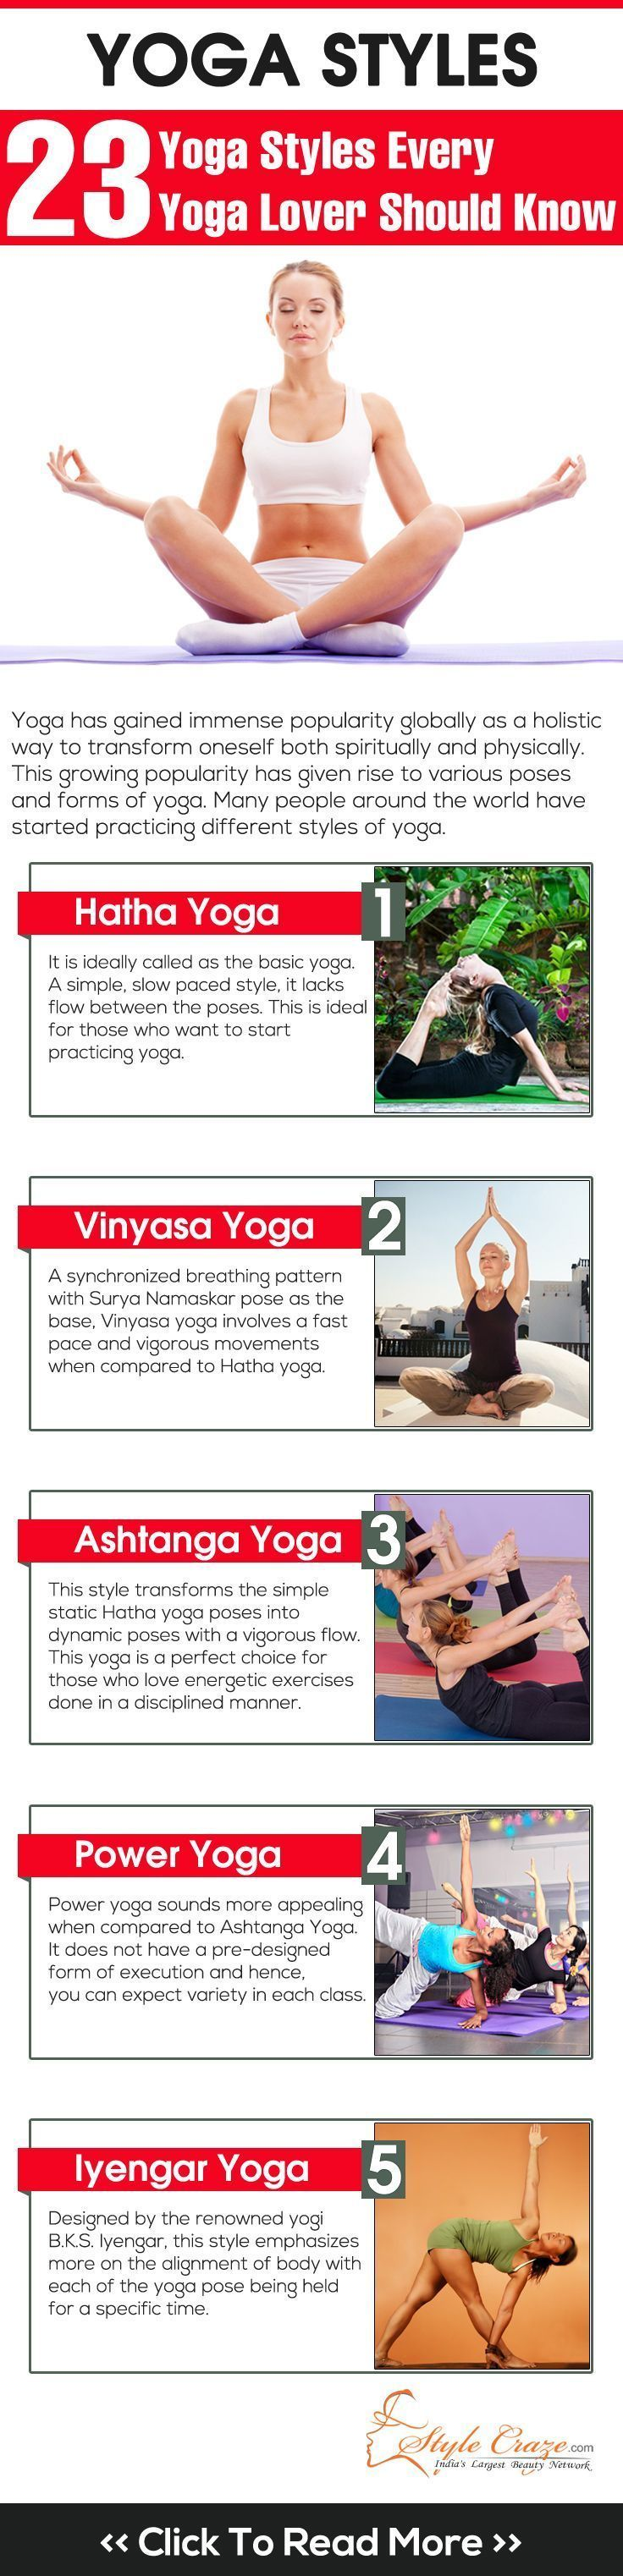 Yoga   23 Yoga Styles Every Yoga Lover Should Know ......... All the yoga styles, from the simple Hatha yoga to Hot Yoga and Anti-gravity yoga, are based on a set of yoga asanas, each style has its own list of benefits .......... Learn more....... Kur